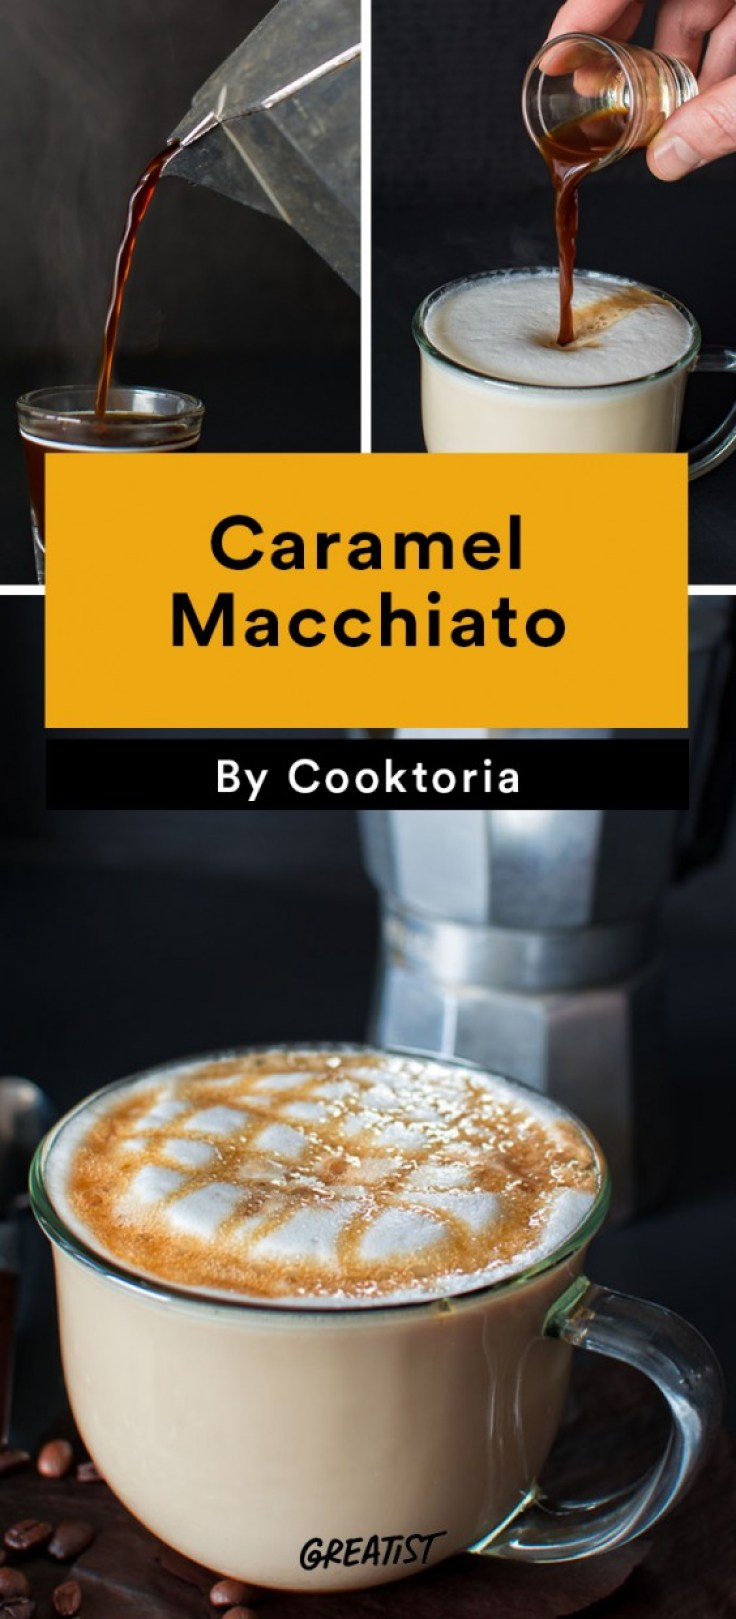 At Home Starbucks Recipes: Caramel Macchiato